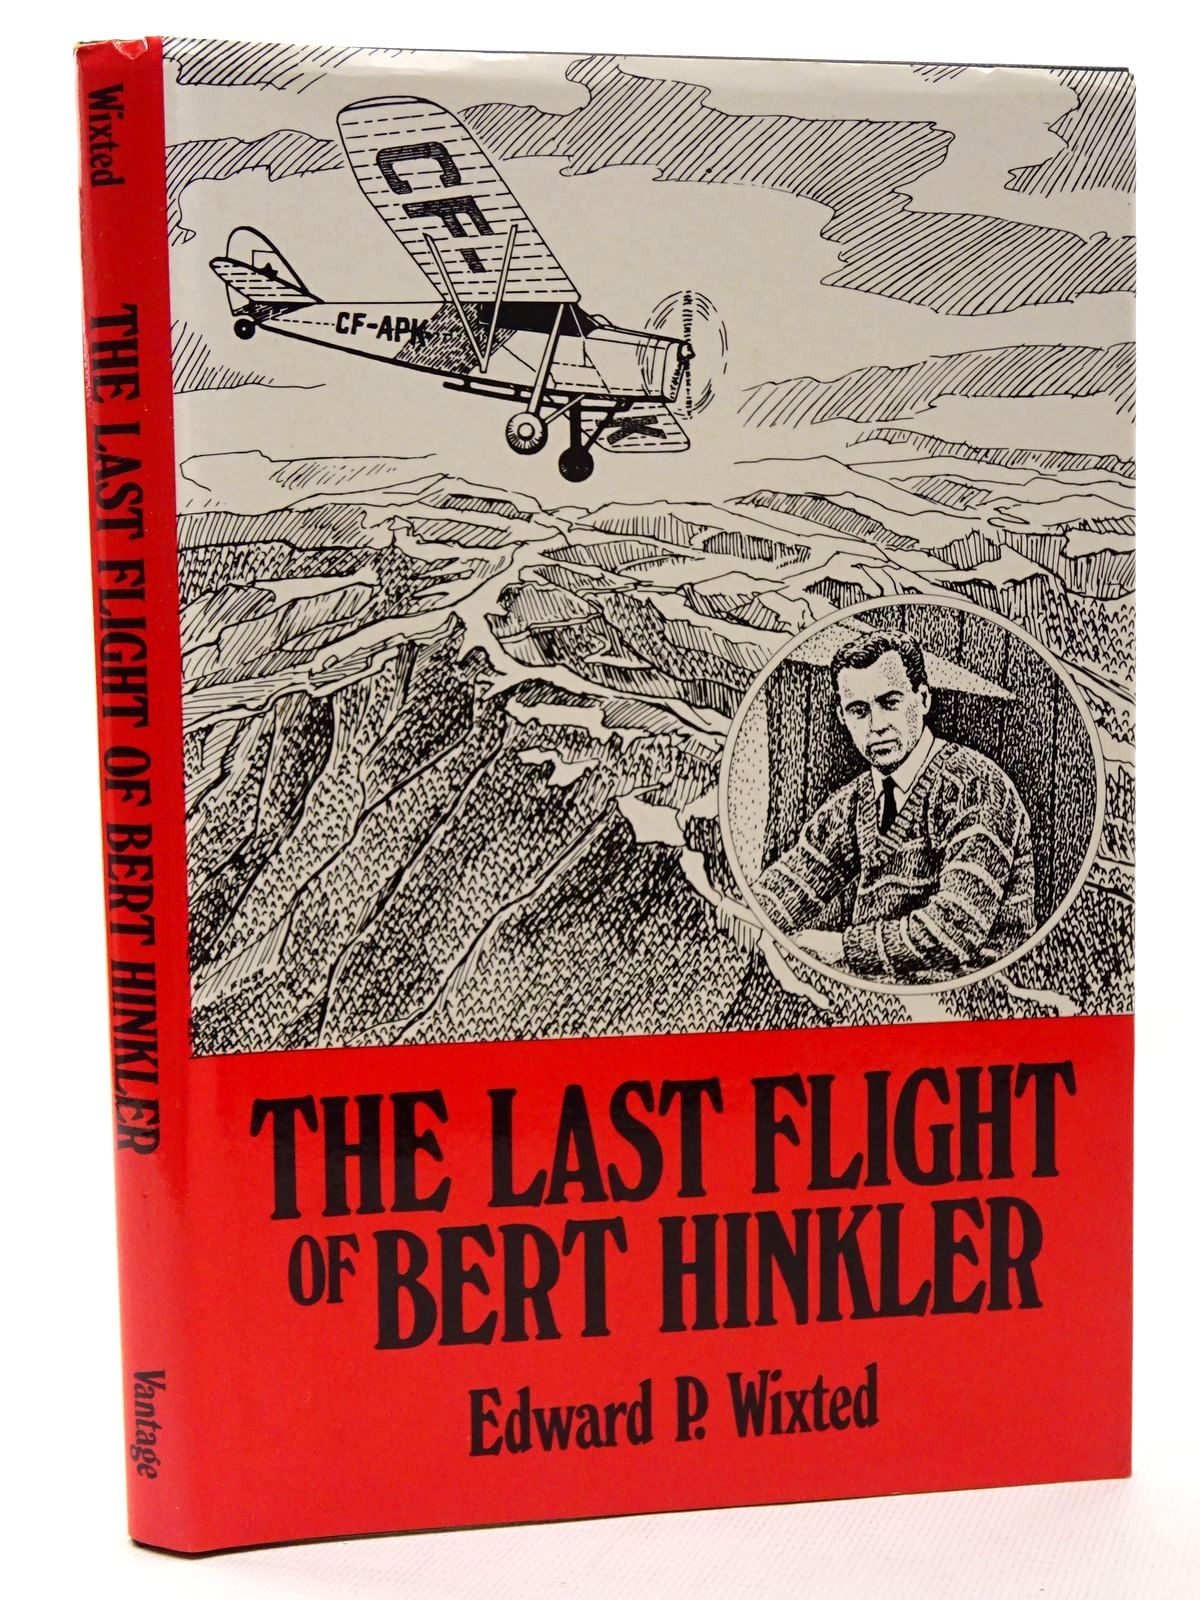 Photo of THE LAST FLIGHT OF BERT HINKLER written by Wixted, Edward P. published by Vantage Press (STOCK CODE: 1610234)  for sale by Stella & Rose's Books